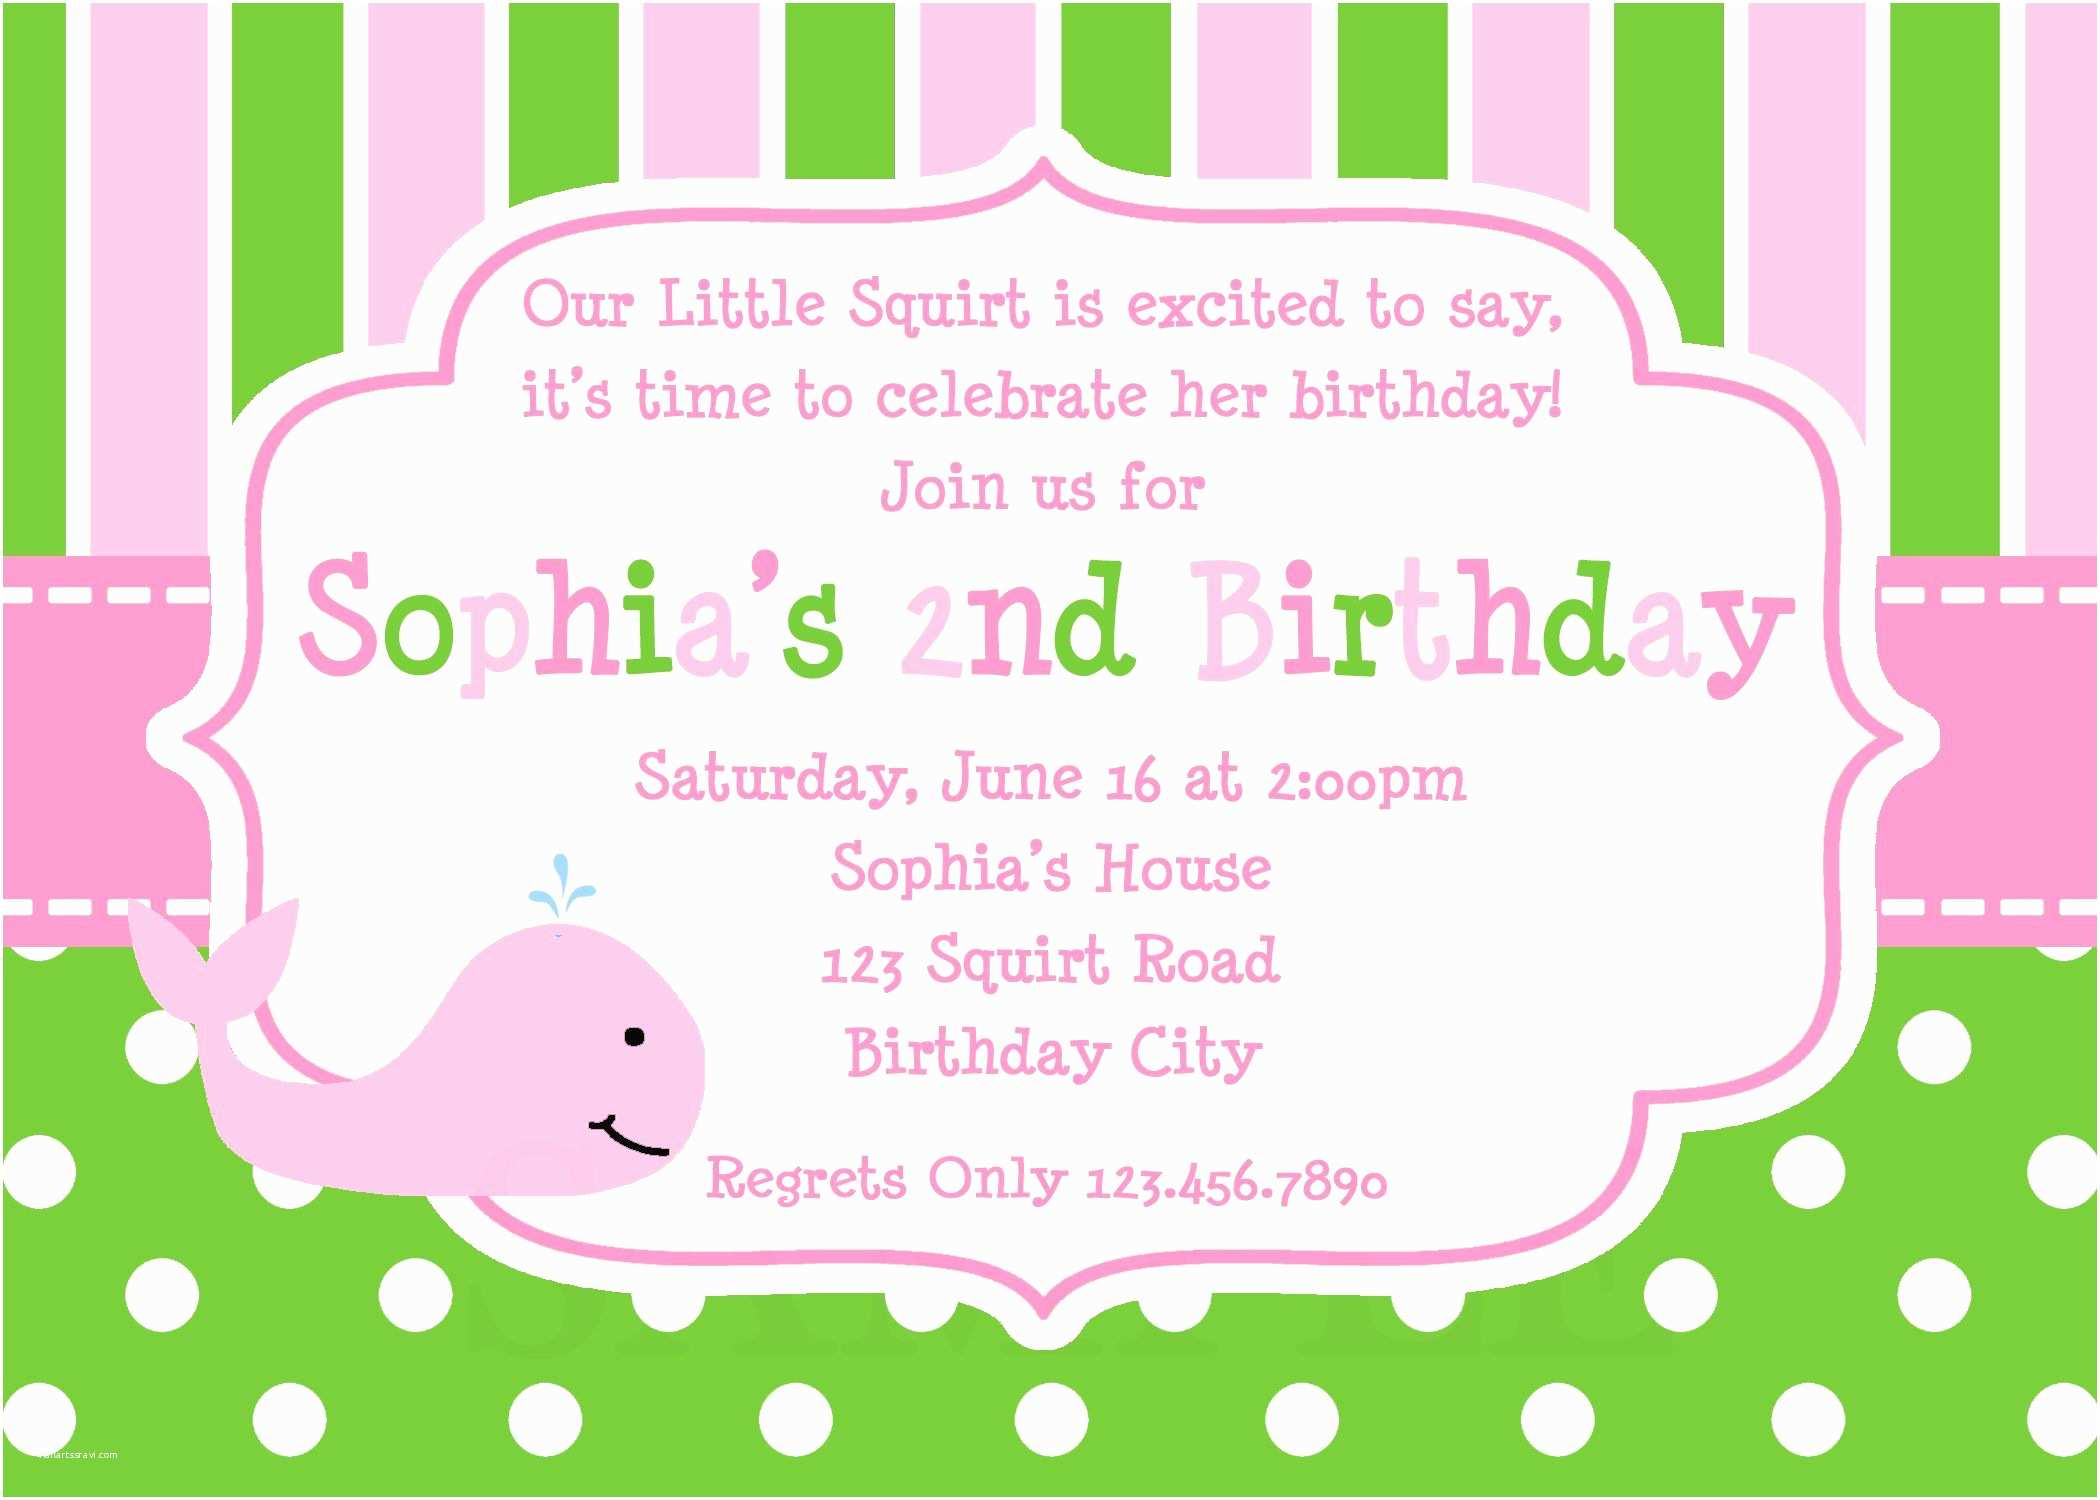 Birthday Invitations Templates 21 Kids Birthday Invitation Wording that We Can Make